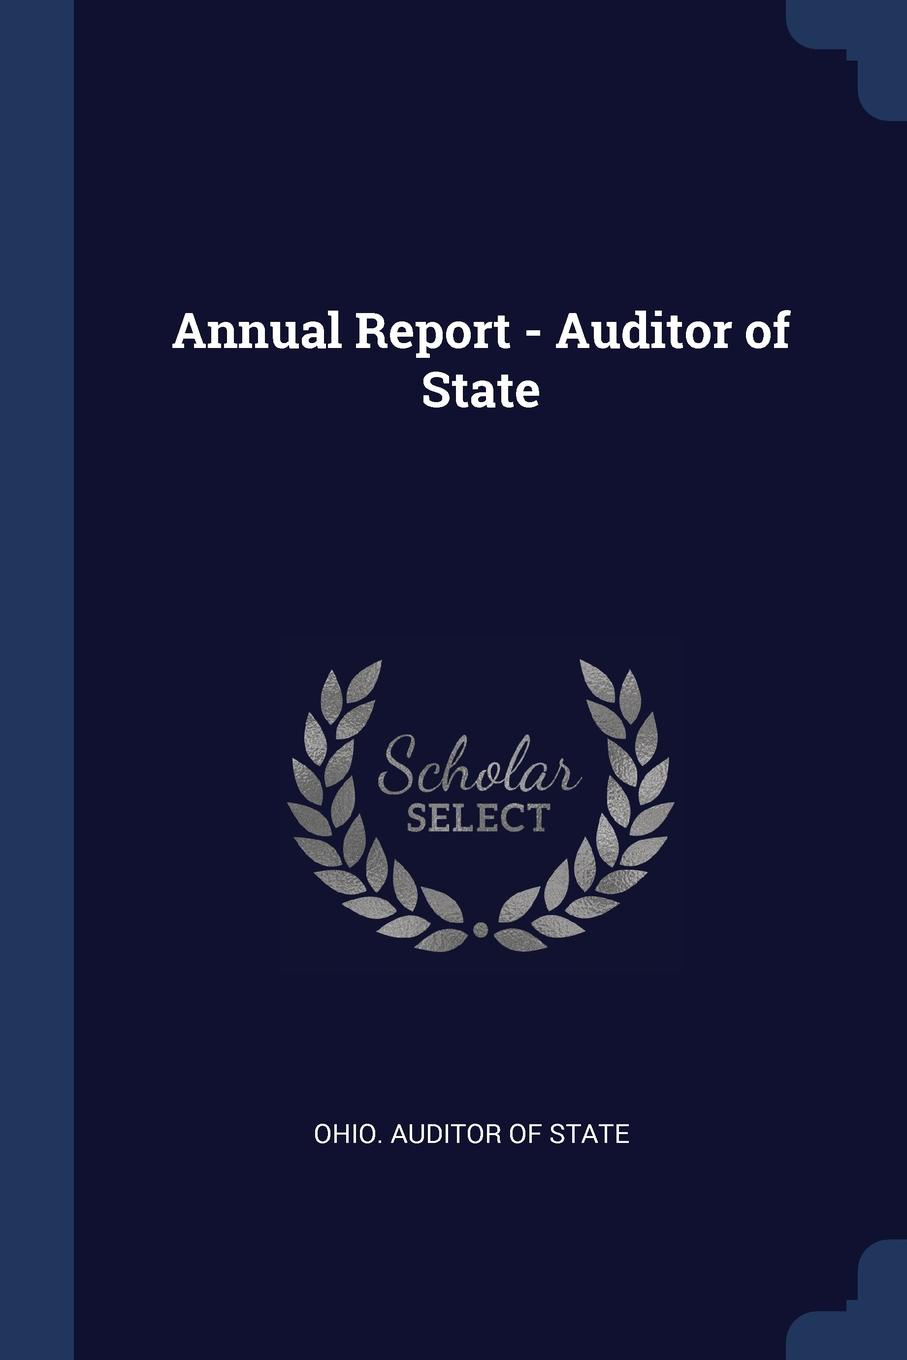 Annual Report - Auditor of State